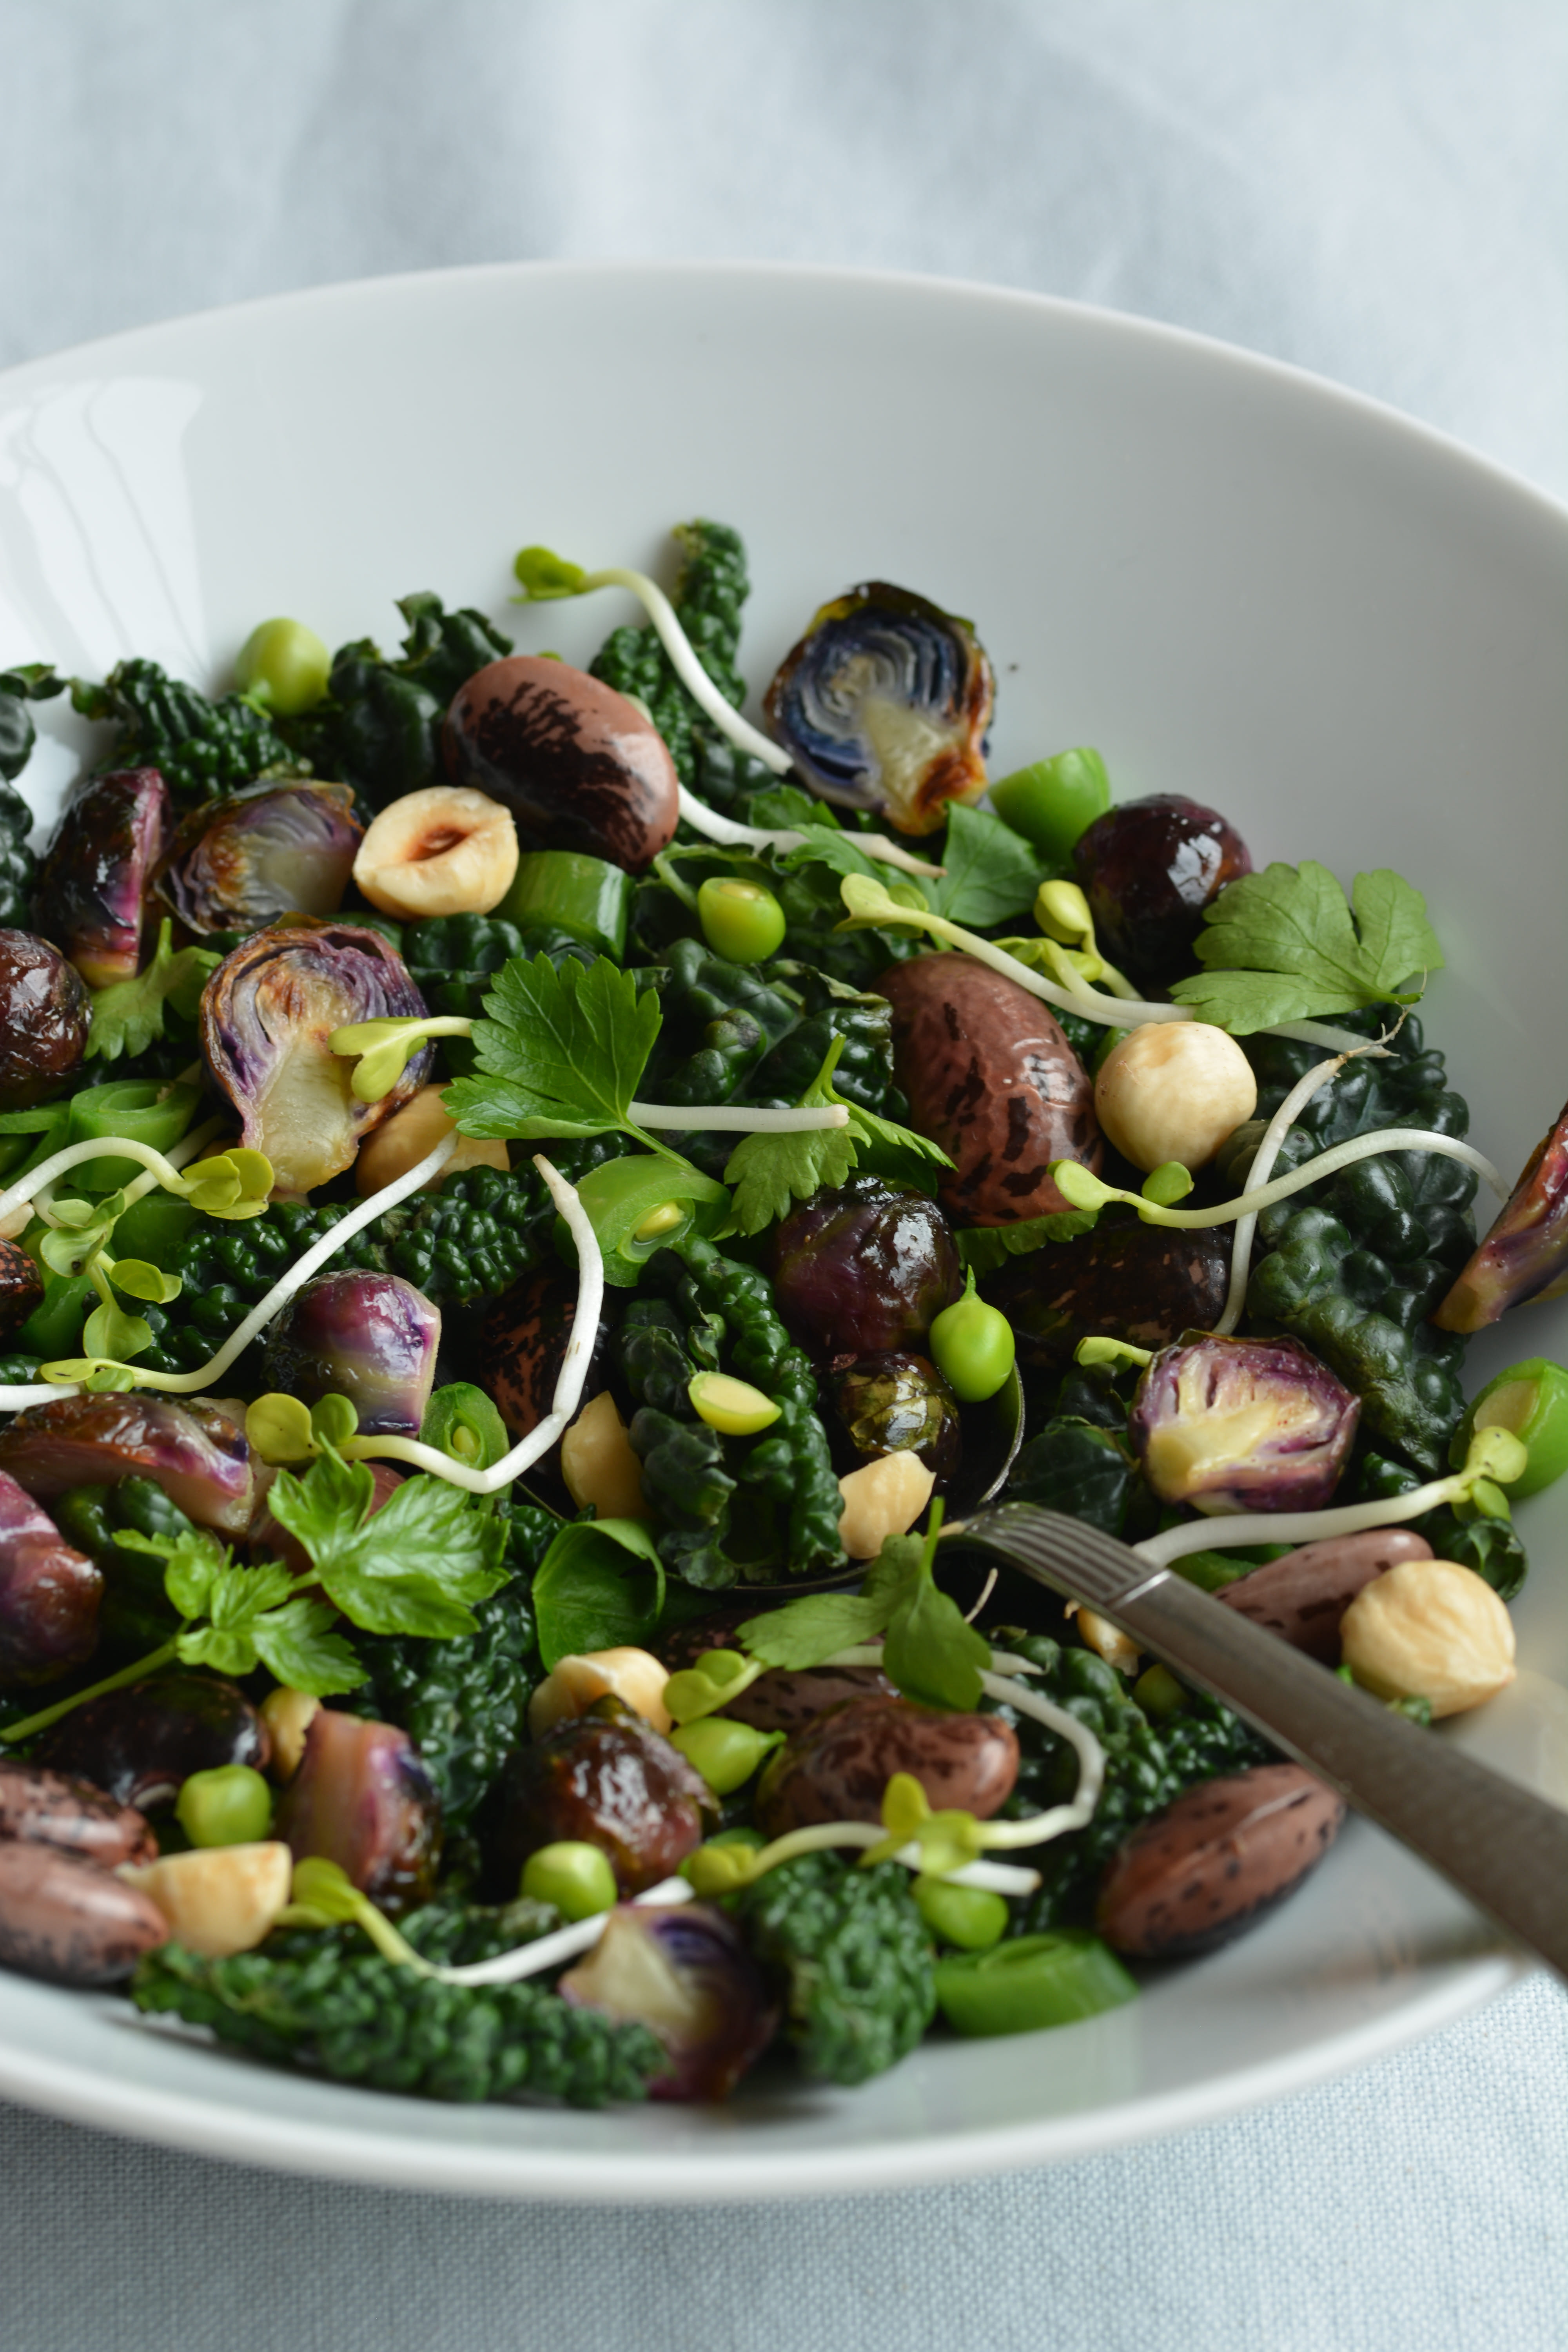 bean salad 2/2 cavolo nero with scarlet runner beans and roasted purple brussels sprouts